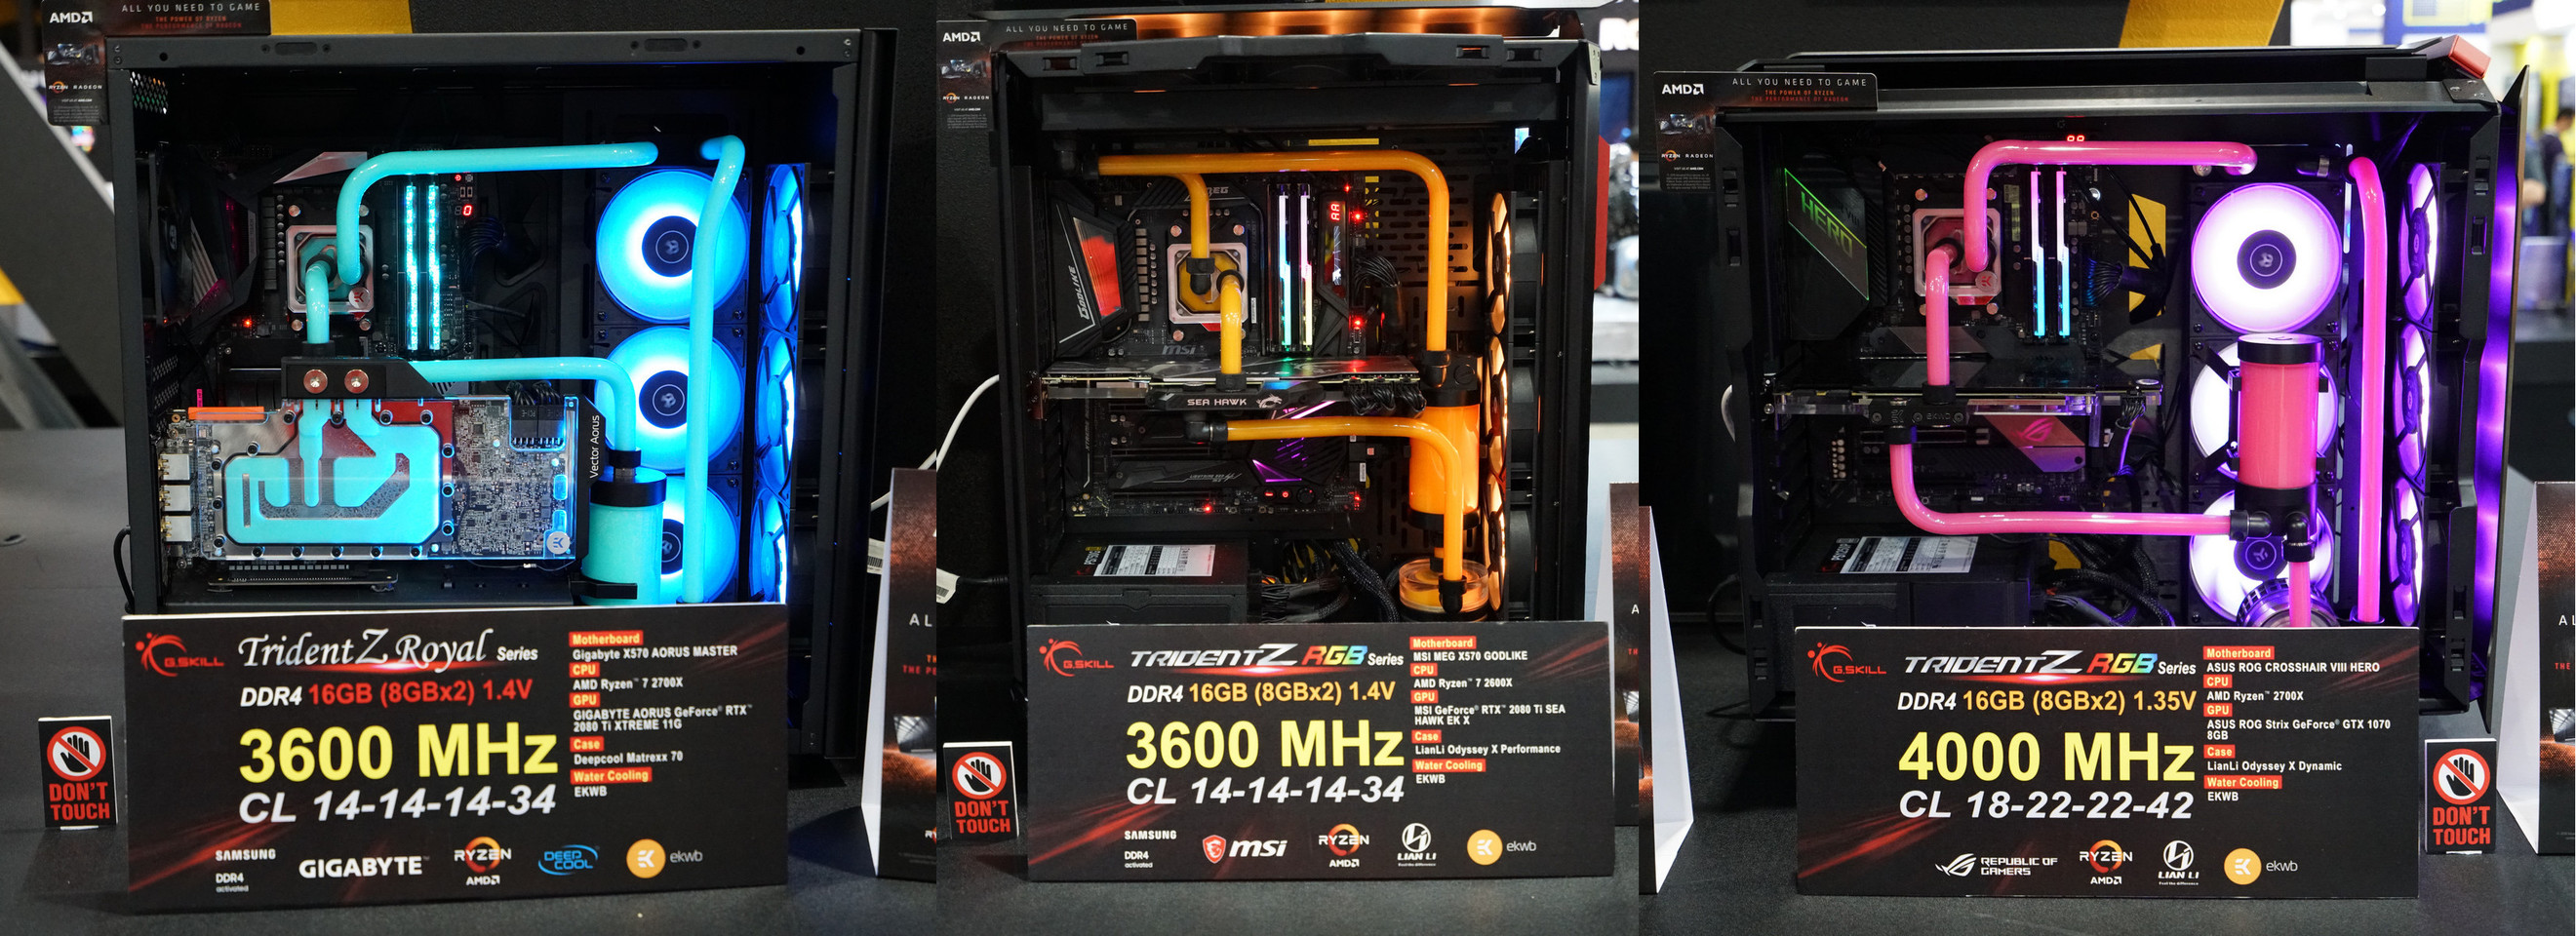 G SKILL Showcases Extreme DDR4 at Computex 2019, Up to DDR4-4000